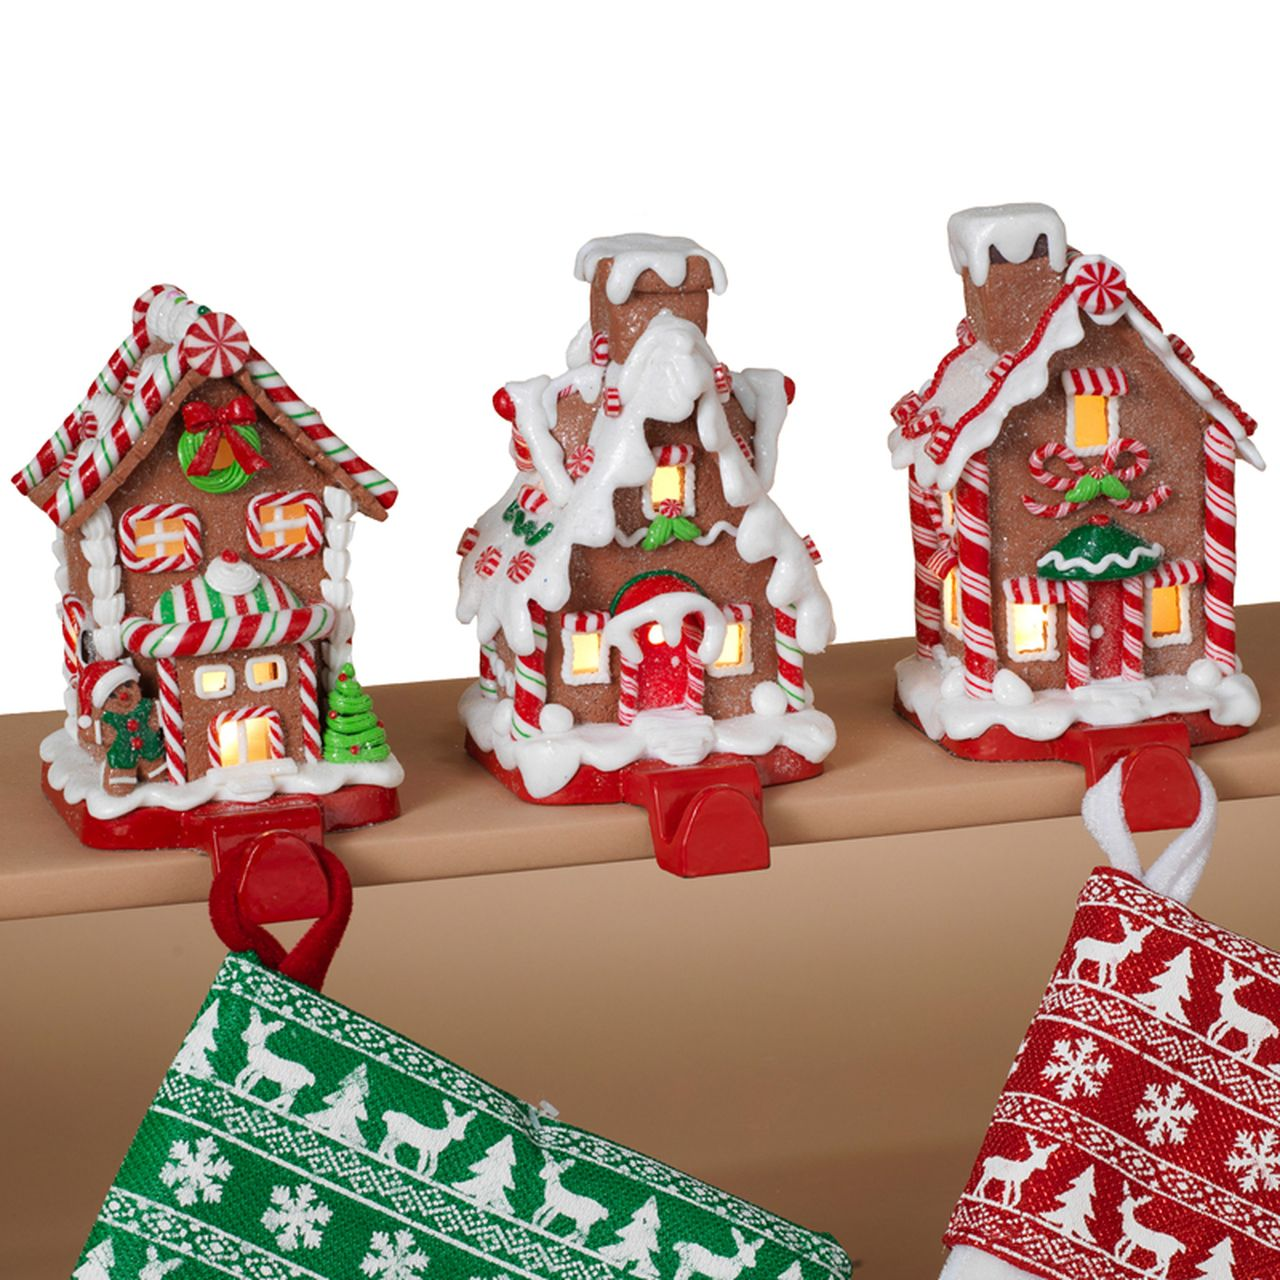 6 Battery Operated Led Lighted Claydough Gingerbread House Stocking Holders Gingerbread Christmas Decor Gingerbread Christmas Tree Christmas Stocking Holders